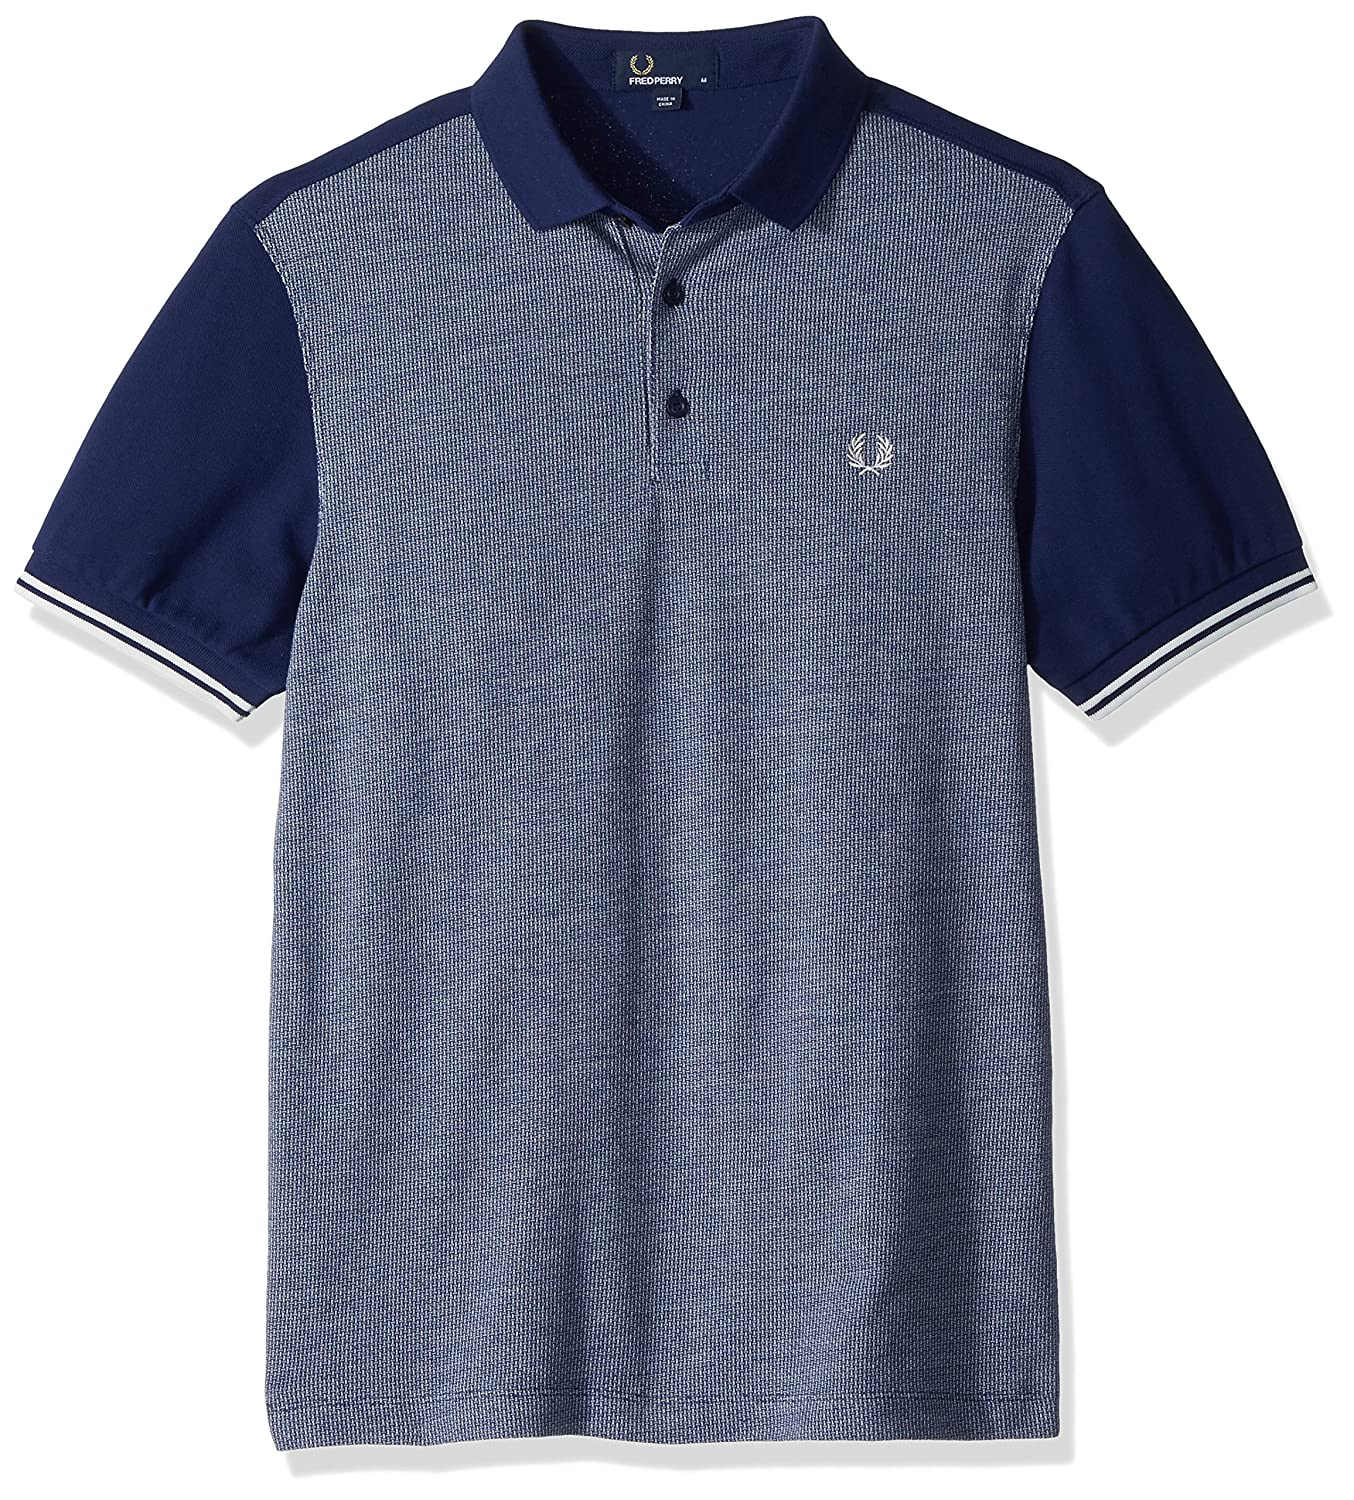 Fred Perry Polo Panel Jacquard: Amazon.es: Ropa y accesorios